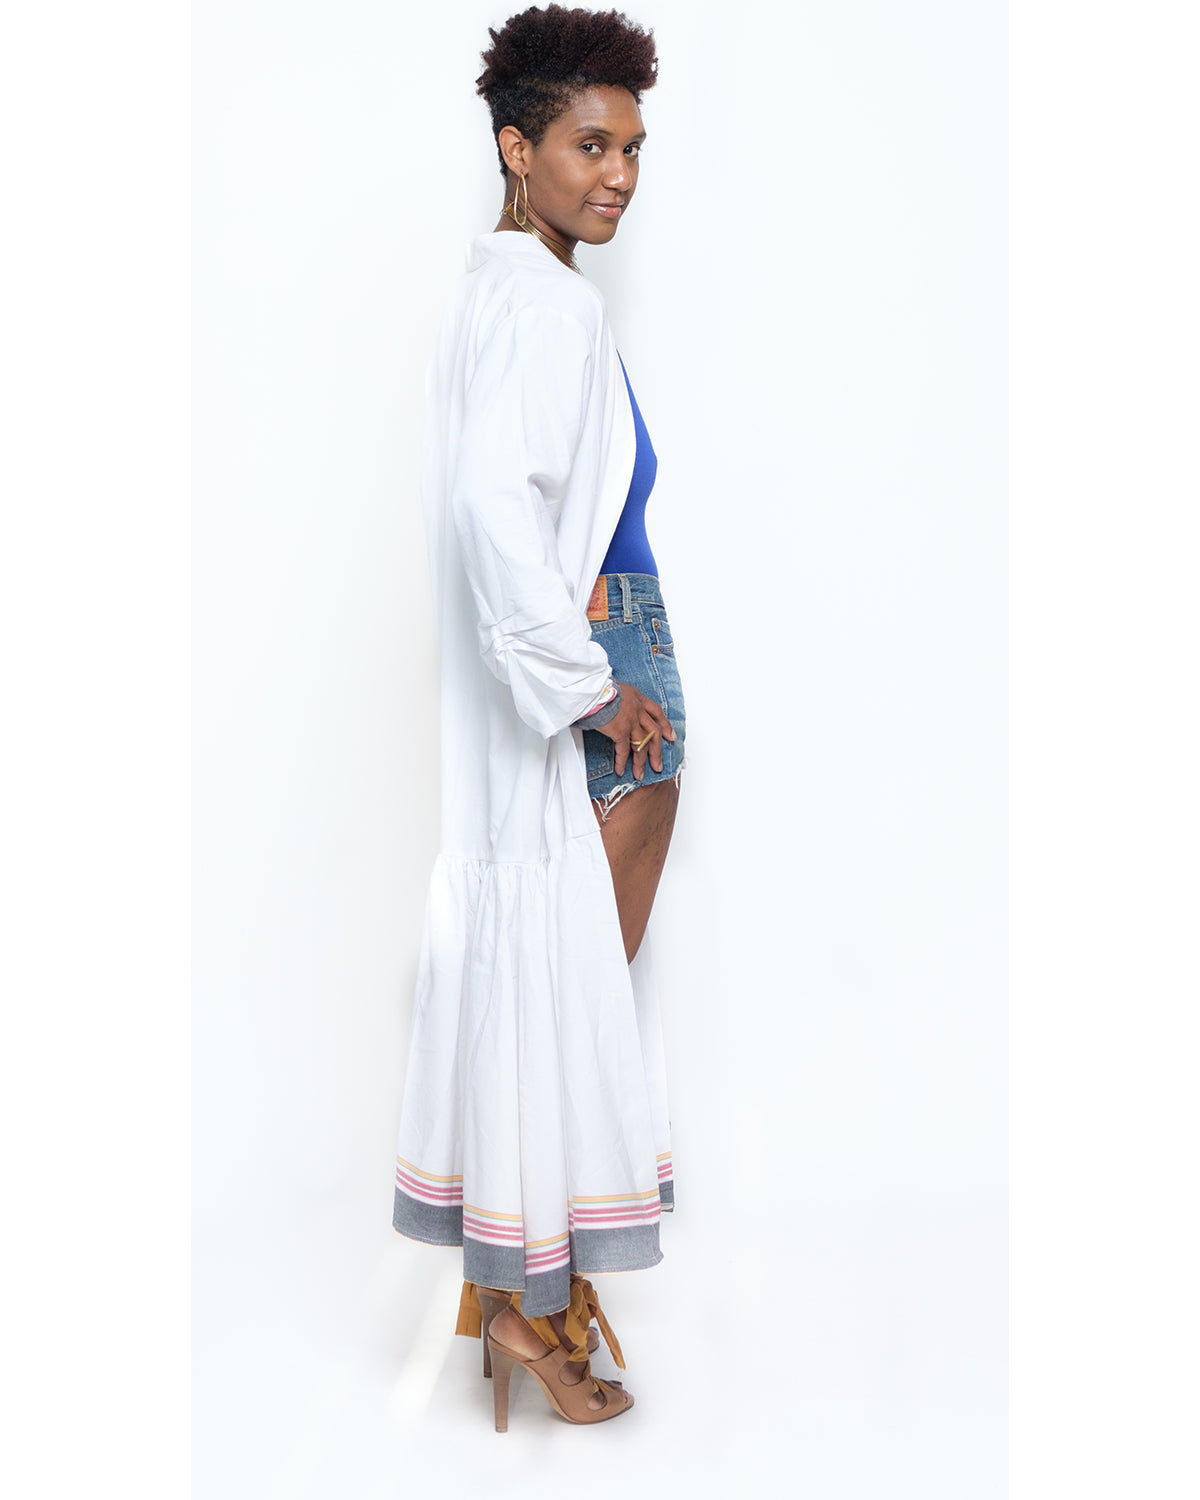 The Diani Robe